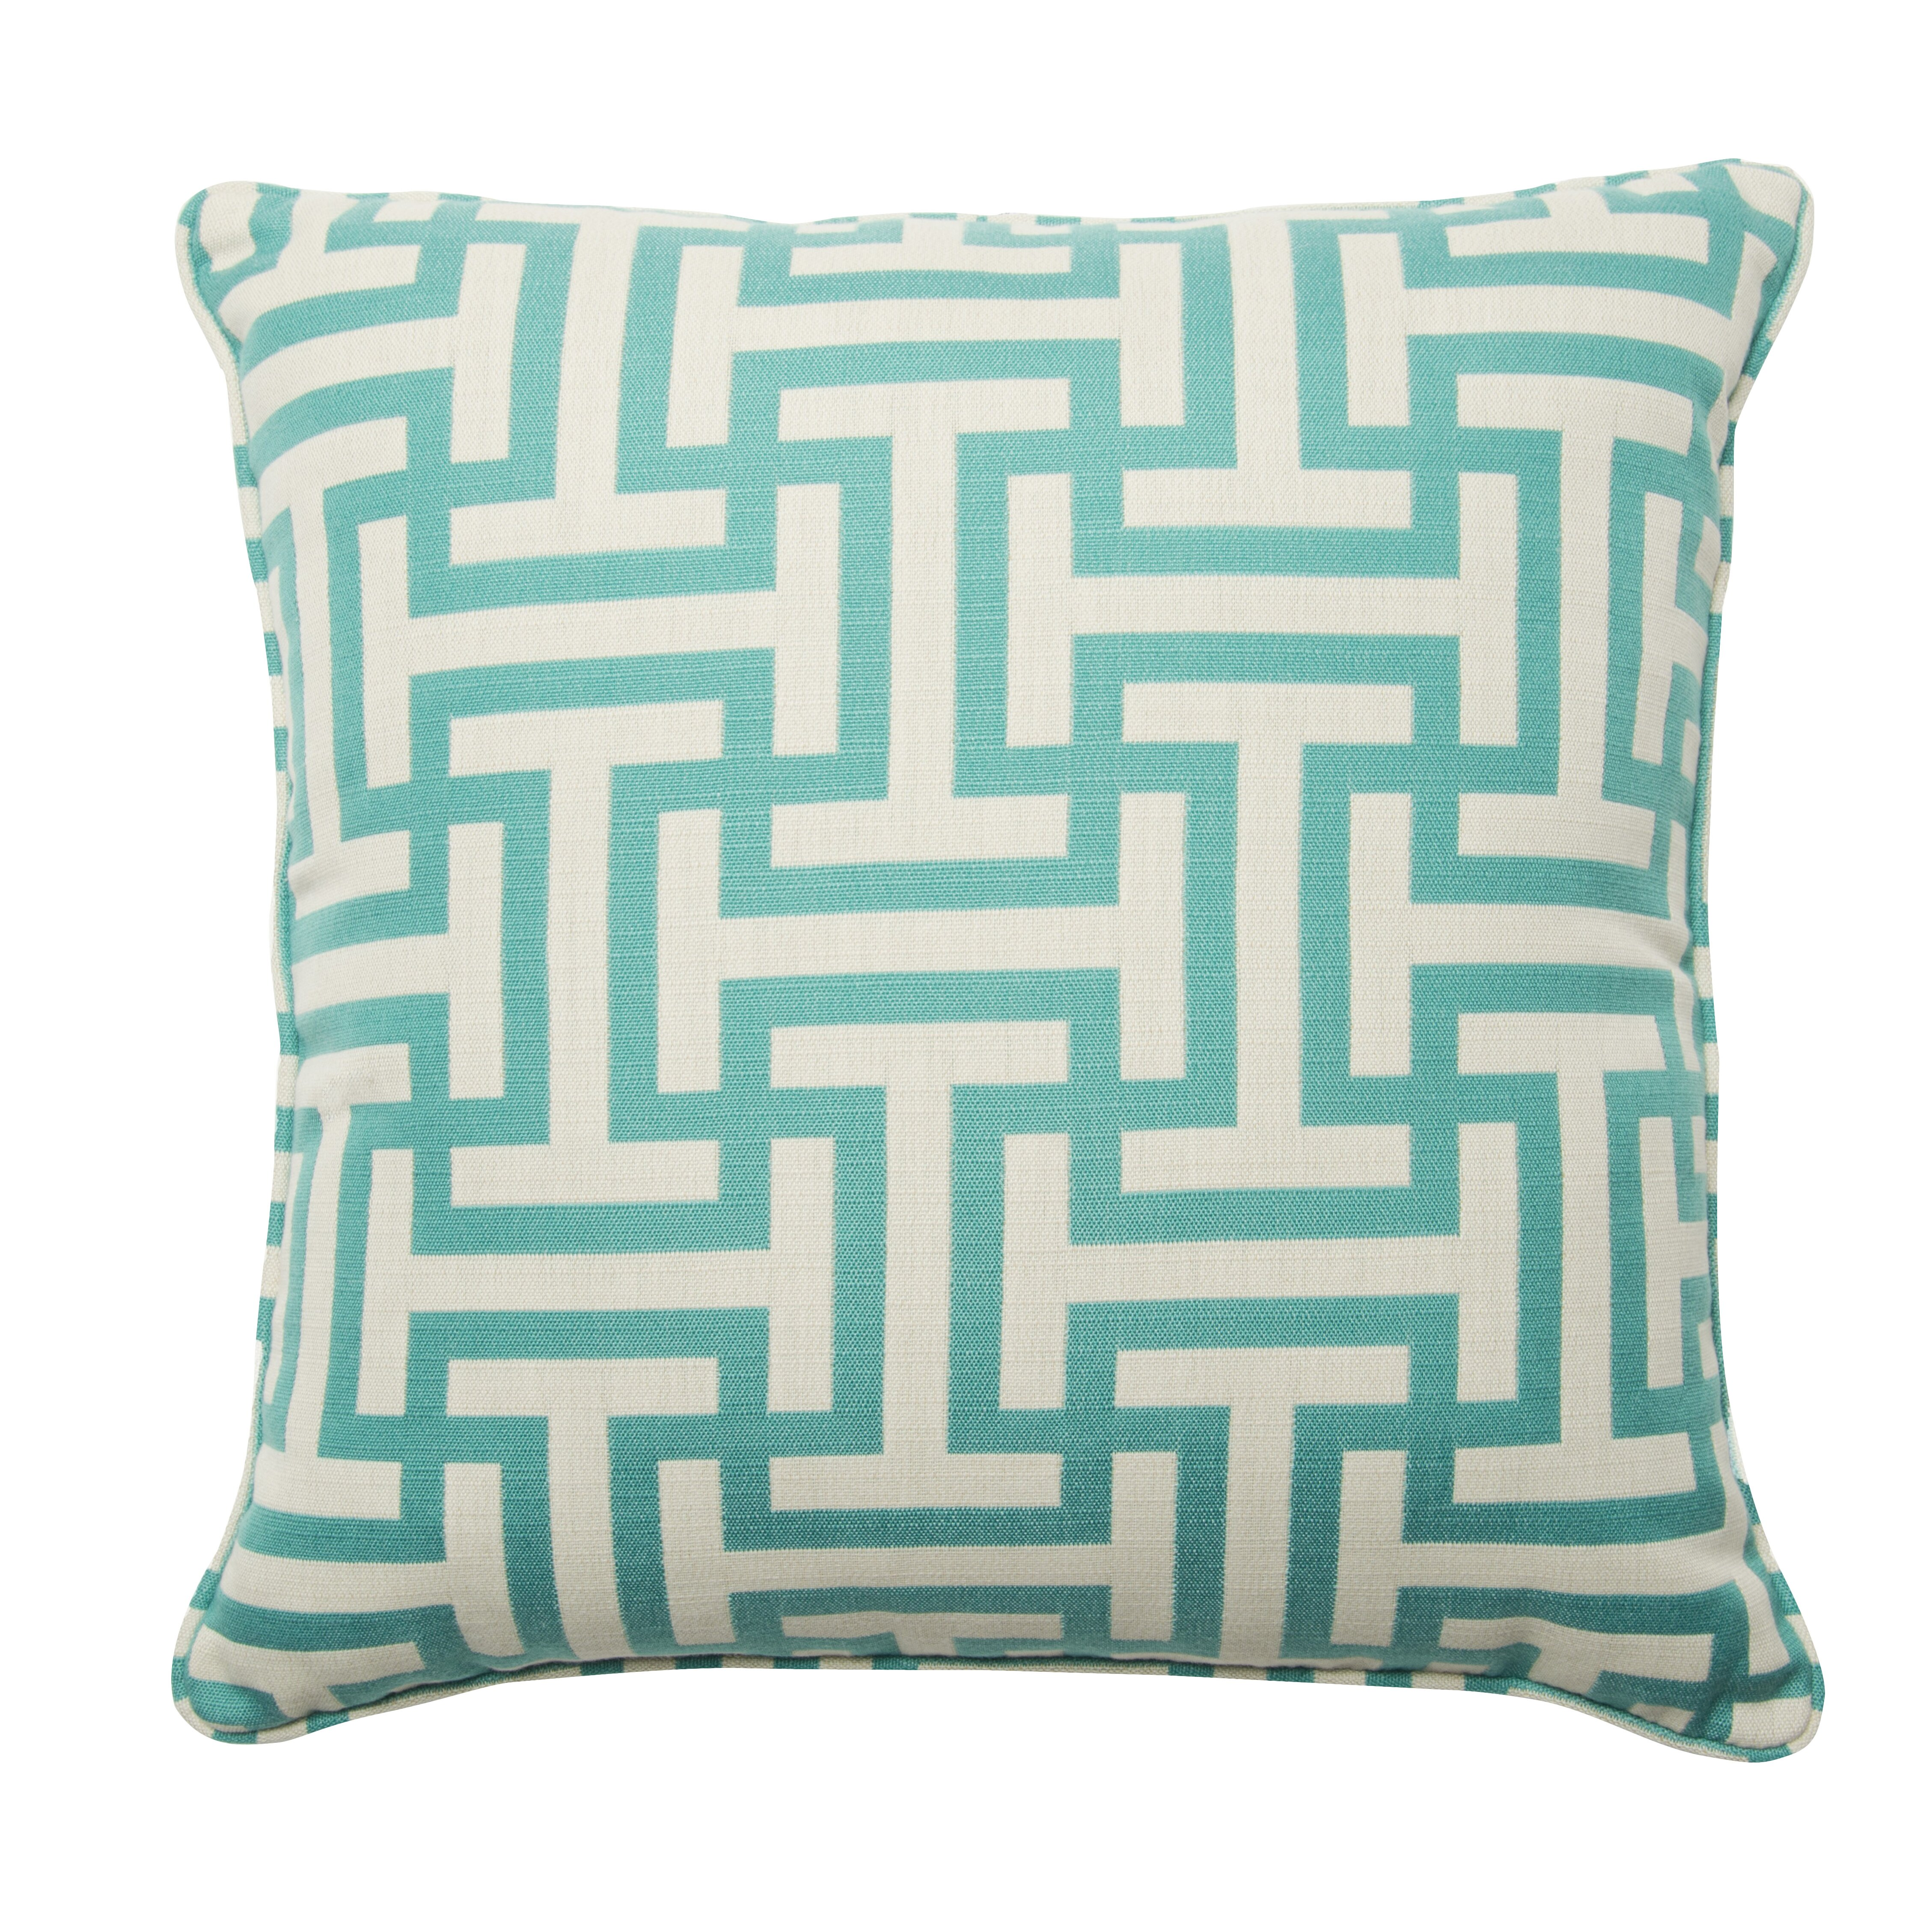 Throw Pillow Zipper : Easy Way Products Premium Single Piped Zippered Throw Pillow Wayfair